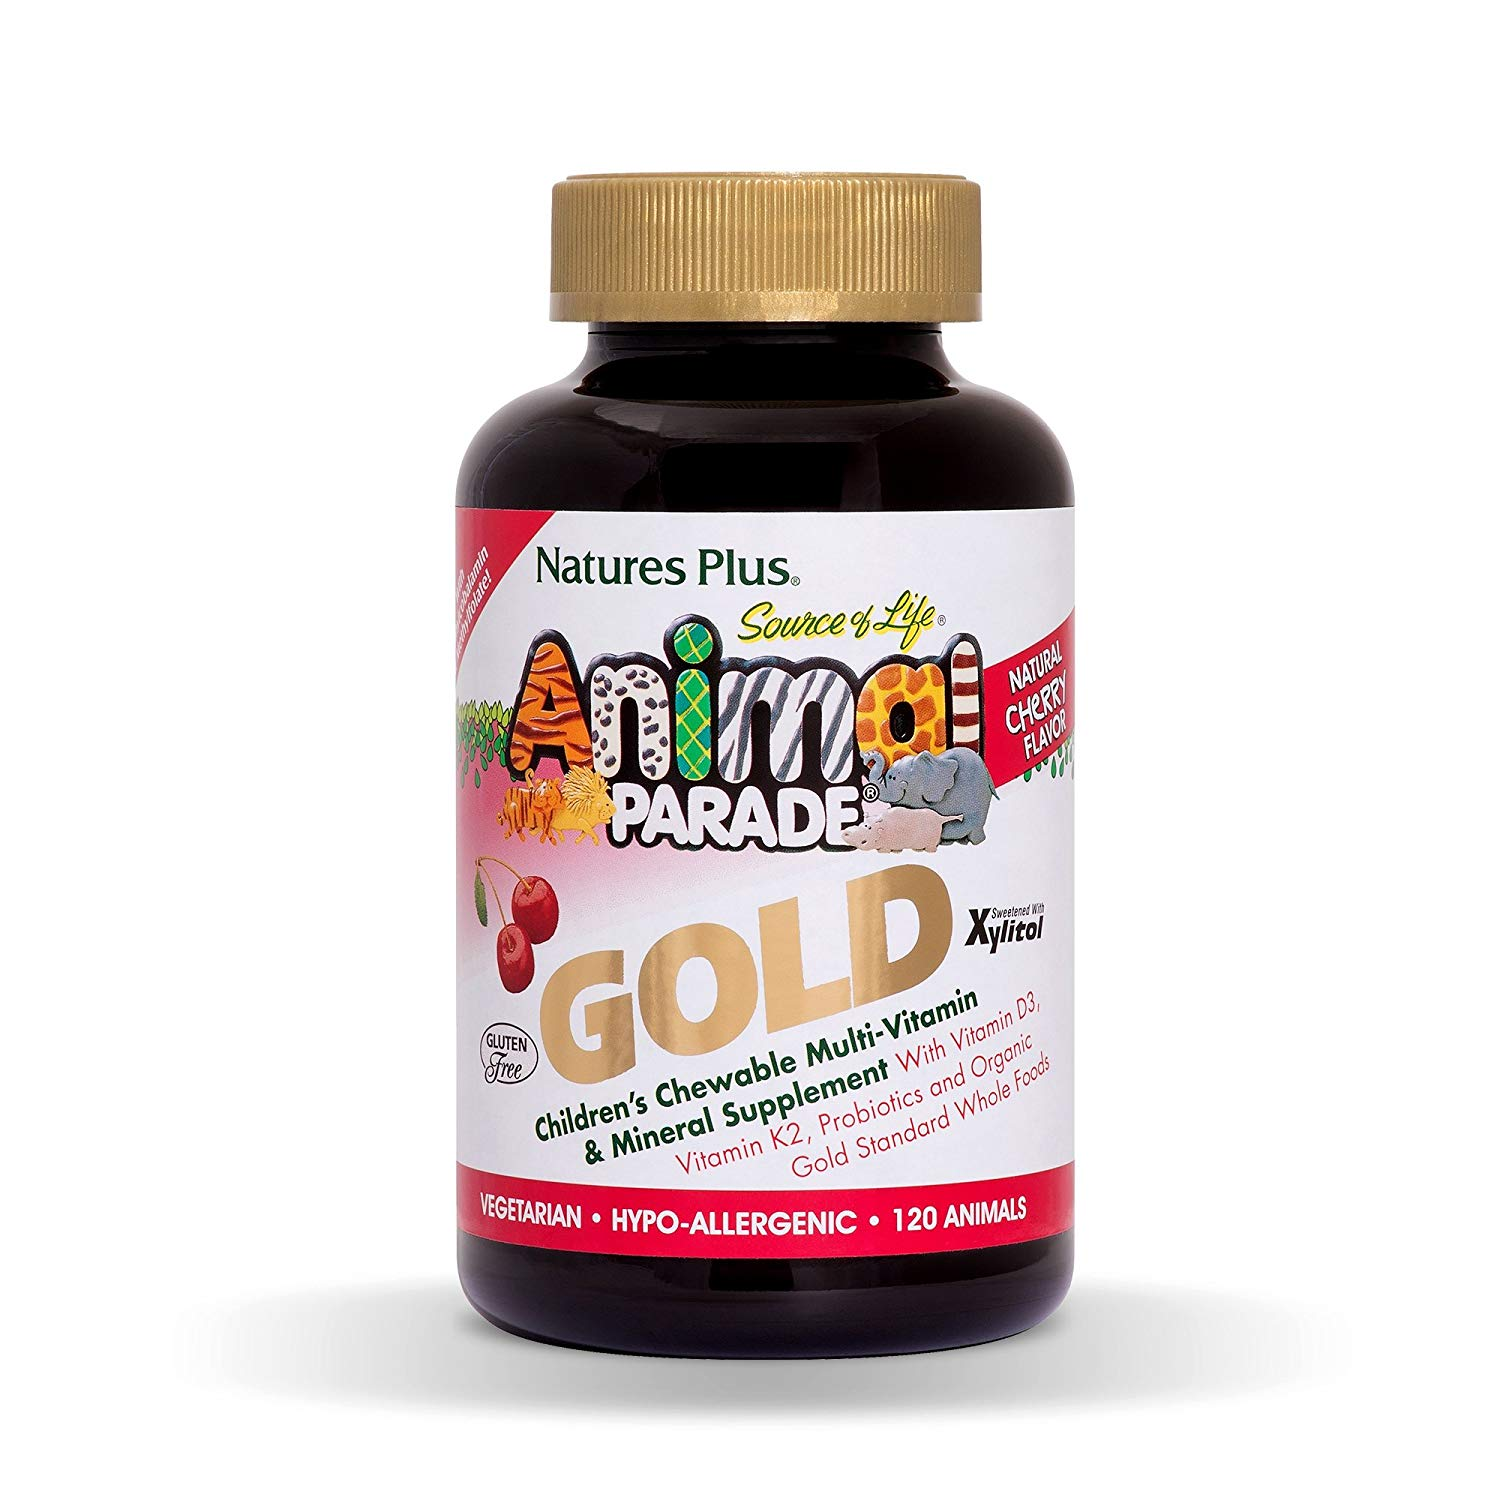 Natures Plus Animal Parade Source of Life Gold Childrens Multivitamin - Cherry Flavor - 120 Chewable Animal Shaped Tablets - Organic Whole Foods, Gluten Free, D3, K2, Immune Support - 60 Servings